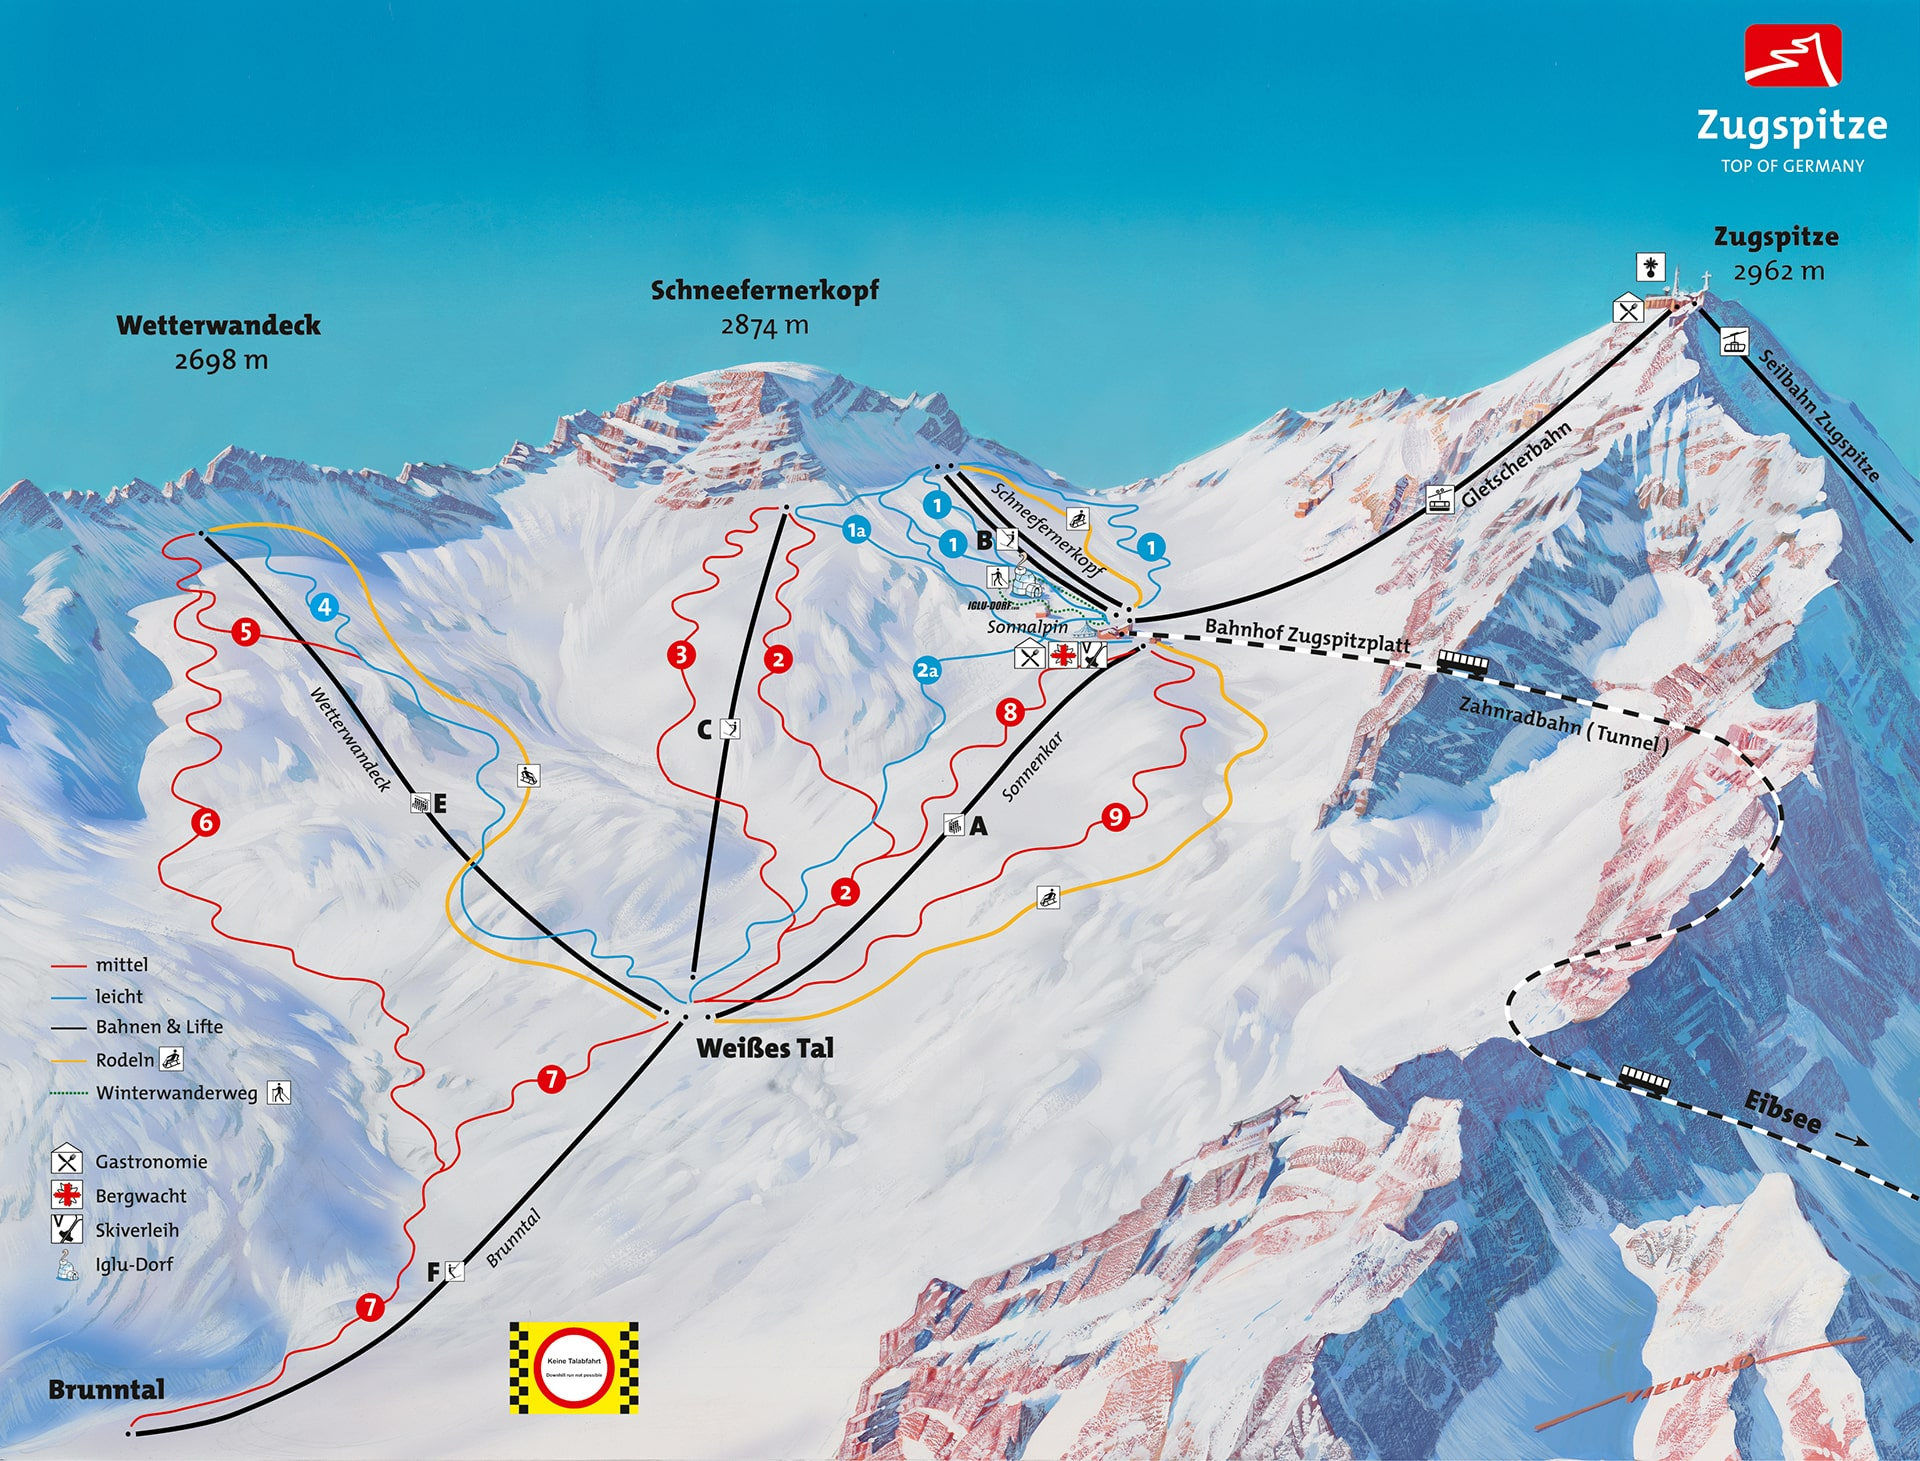 Zugspitze Ski Resort Ski Trail Map